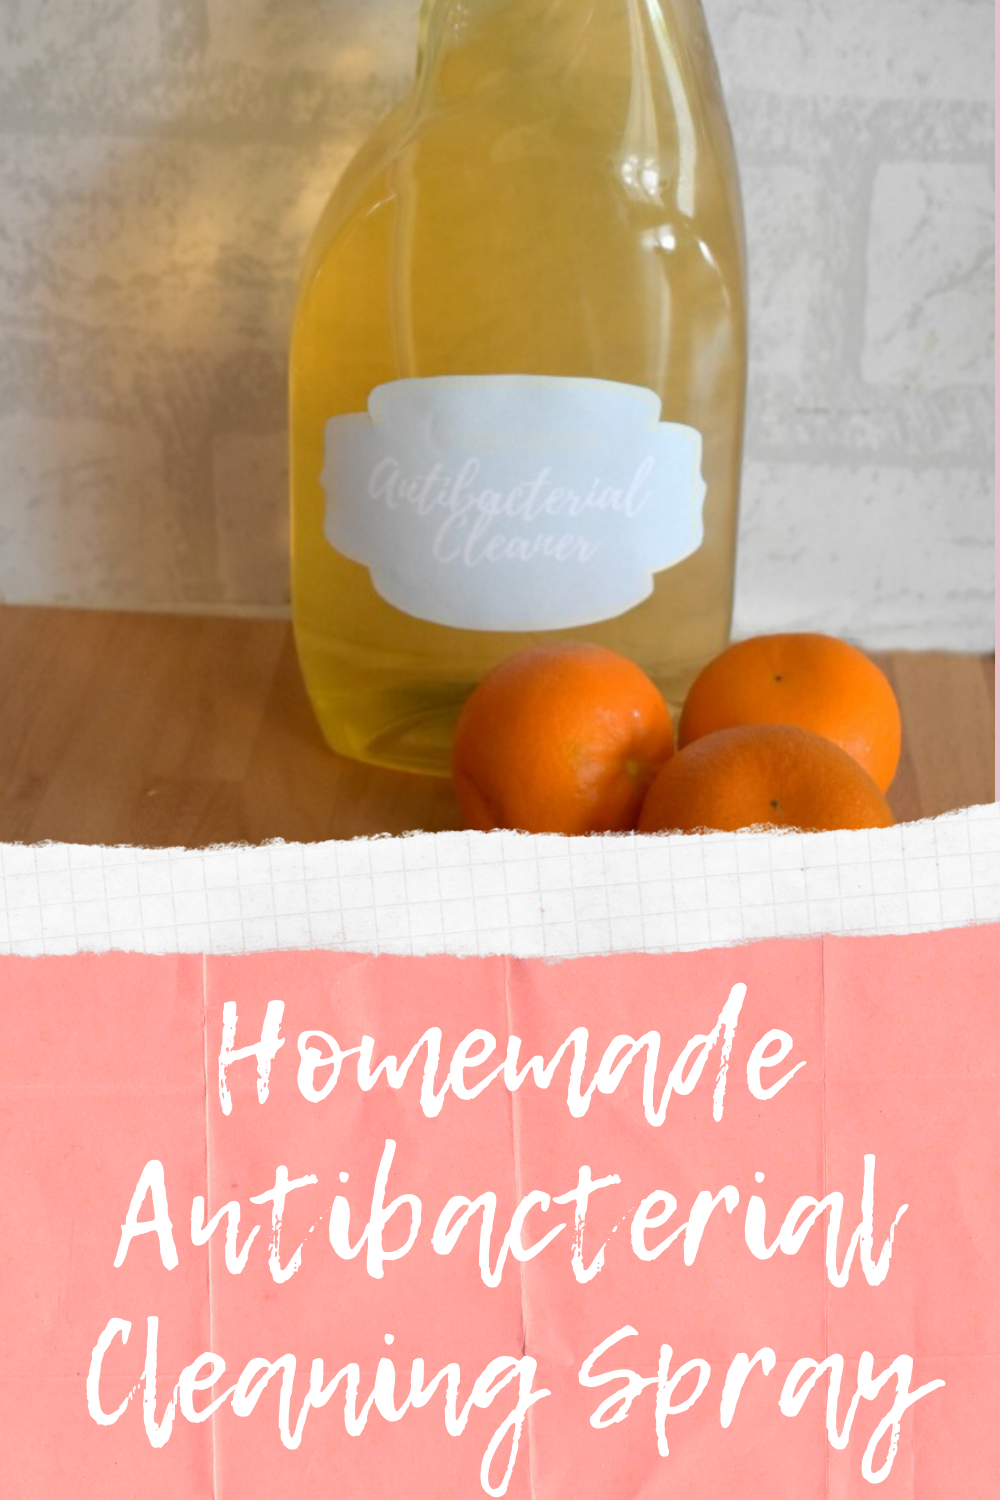 Homemade Antibacterial Cleaning Spray - Make your own cleaning products